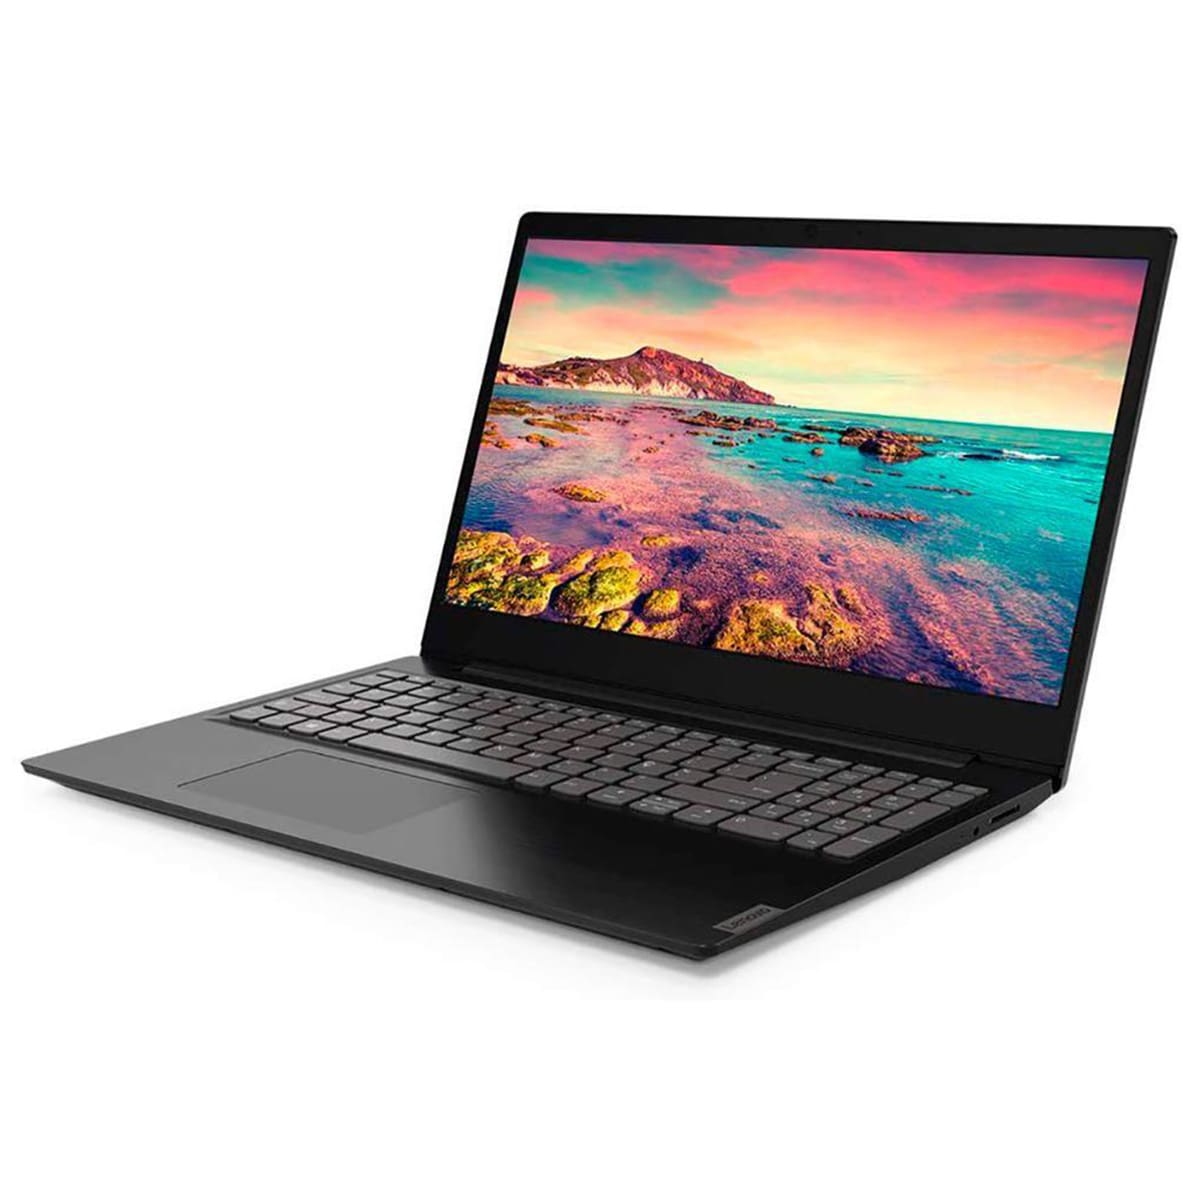 "Notebook - Lenovo 81v80006br I5-8265u 1.60ghz 8gb 256gb Ssd Intel Hd Graphics Windows 10 Professional Bs145 15,6"" Polegadas"